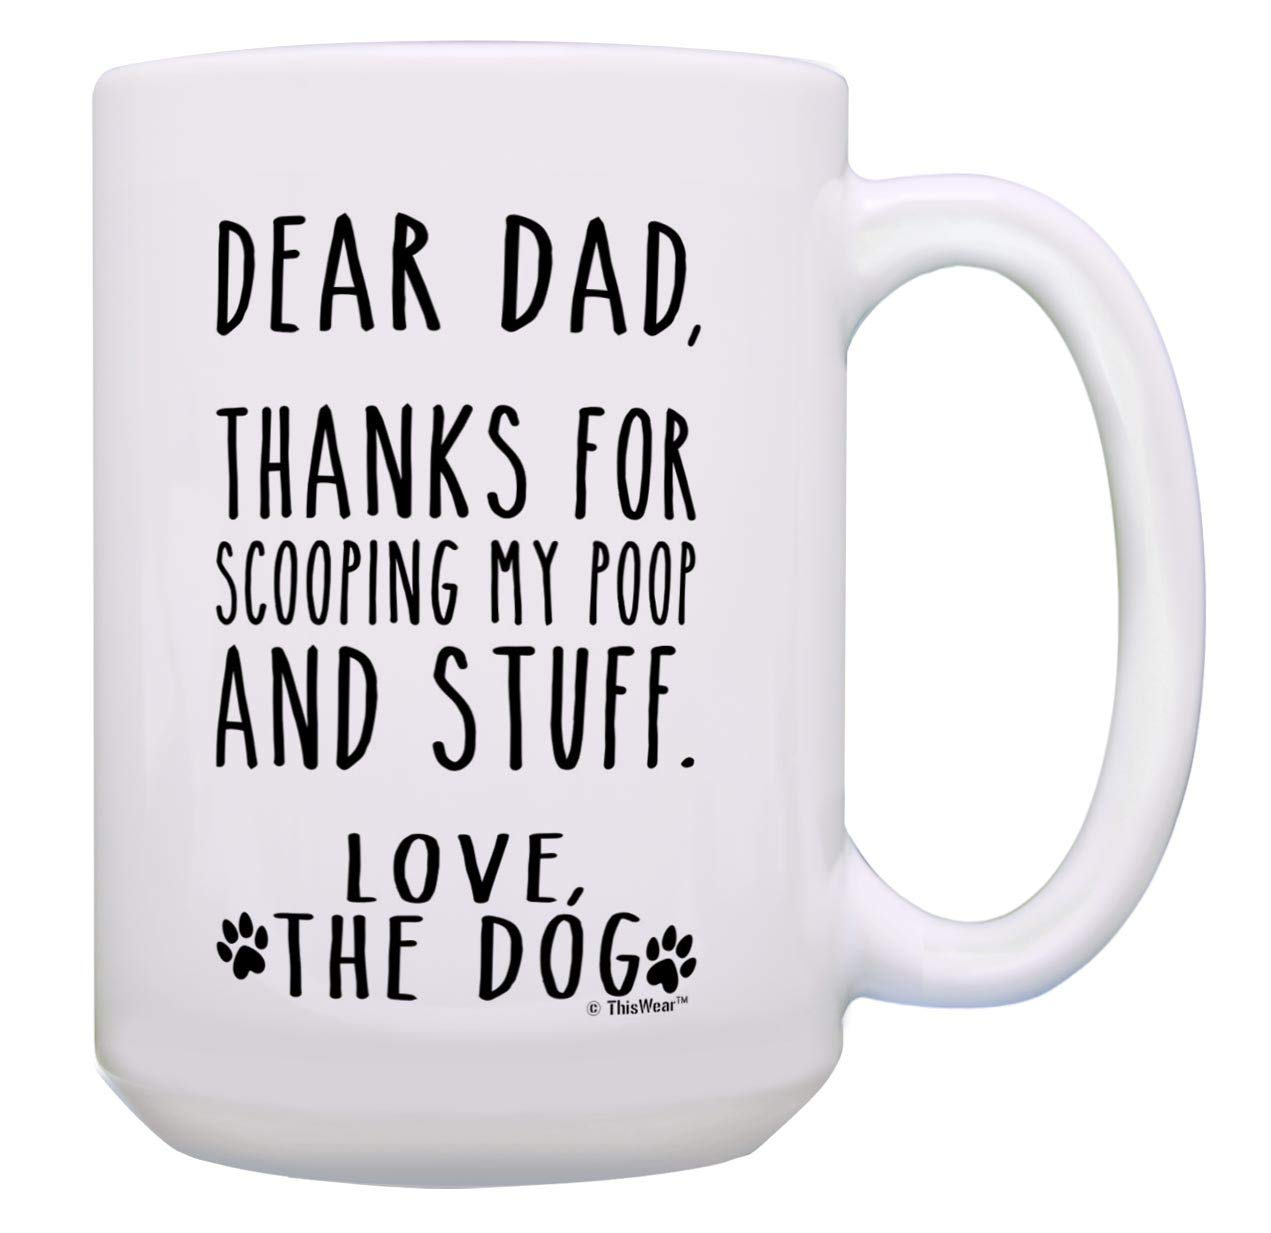 Dog Lover Gifts Thanks for Scooping My Poop and Stuff Dog Gag Gifts 15-oz Coffee Mug Tea Cup White